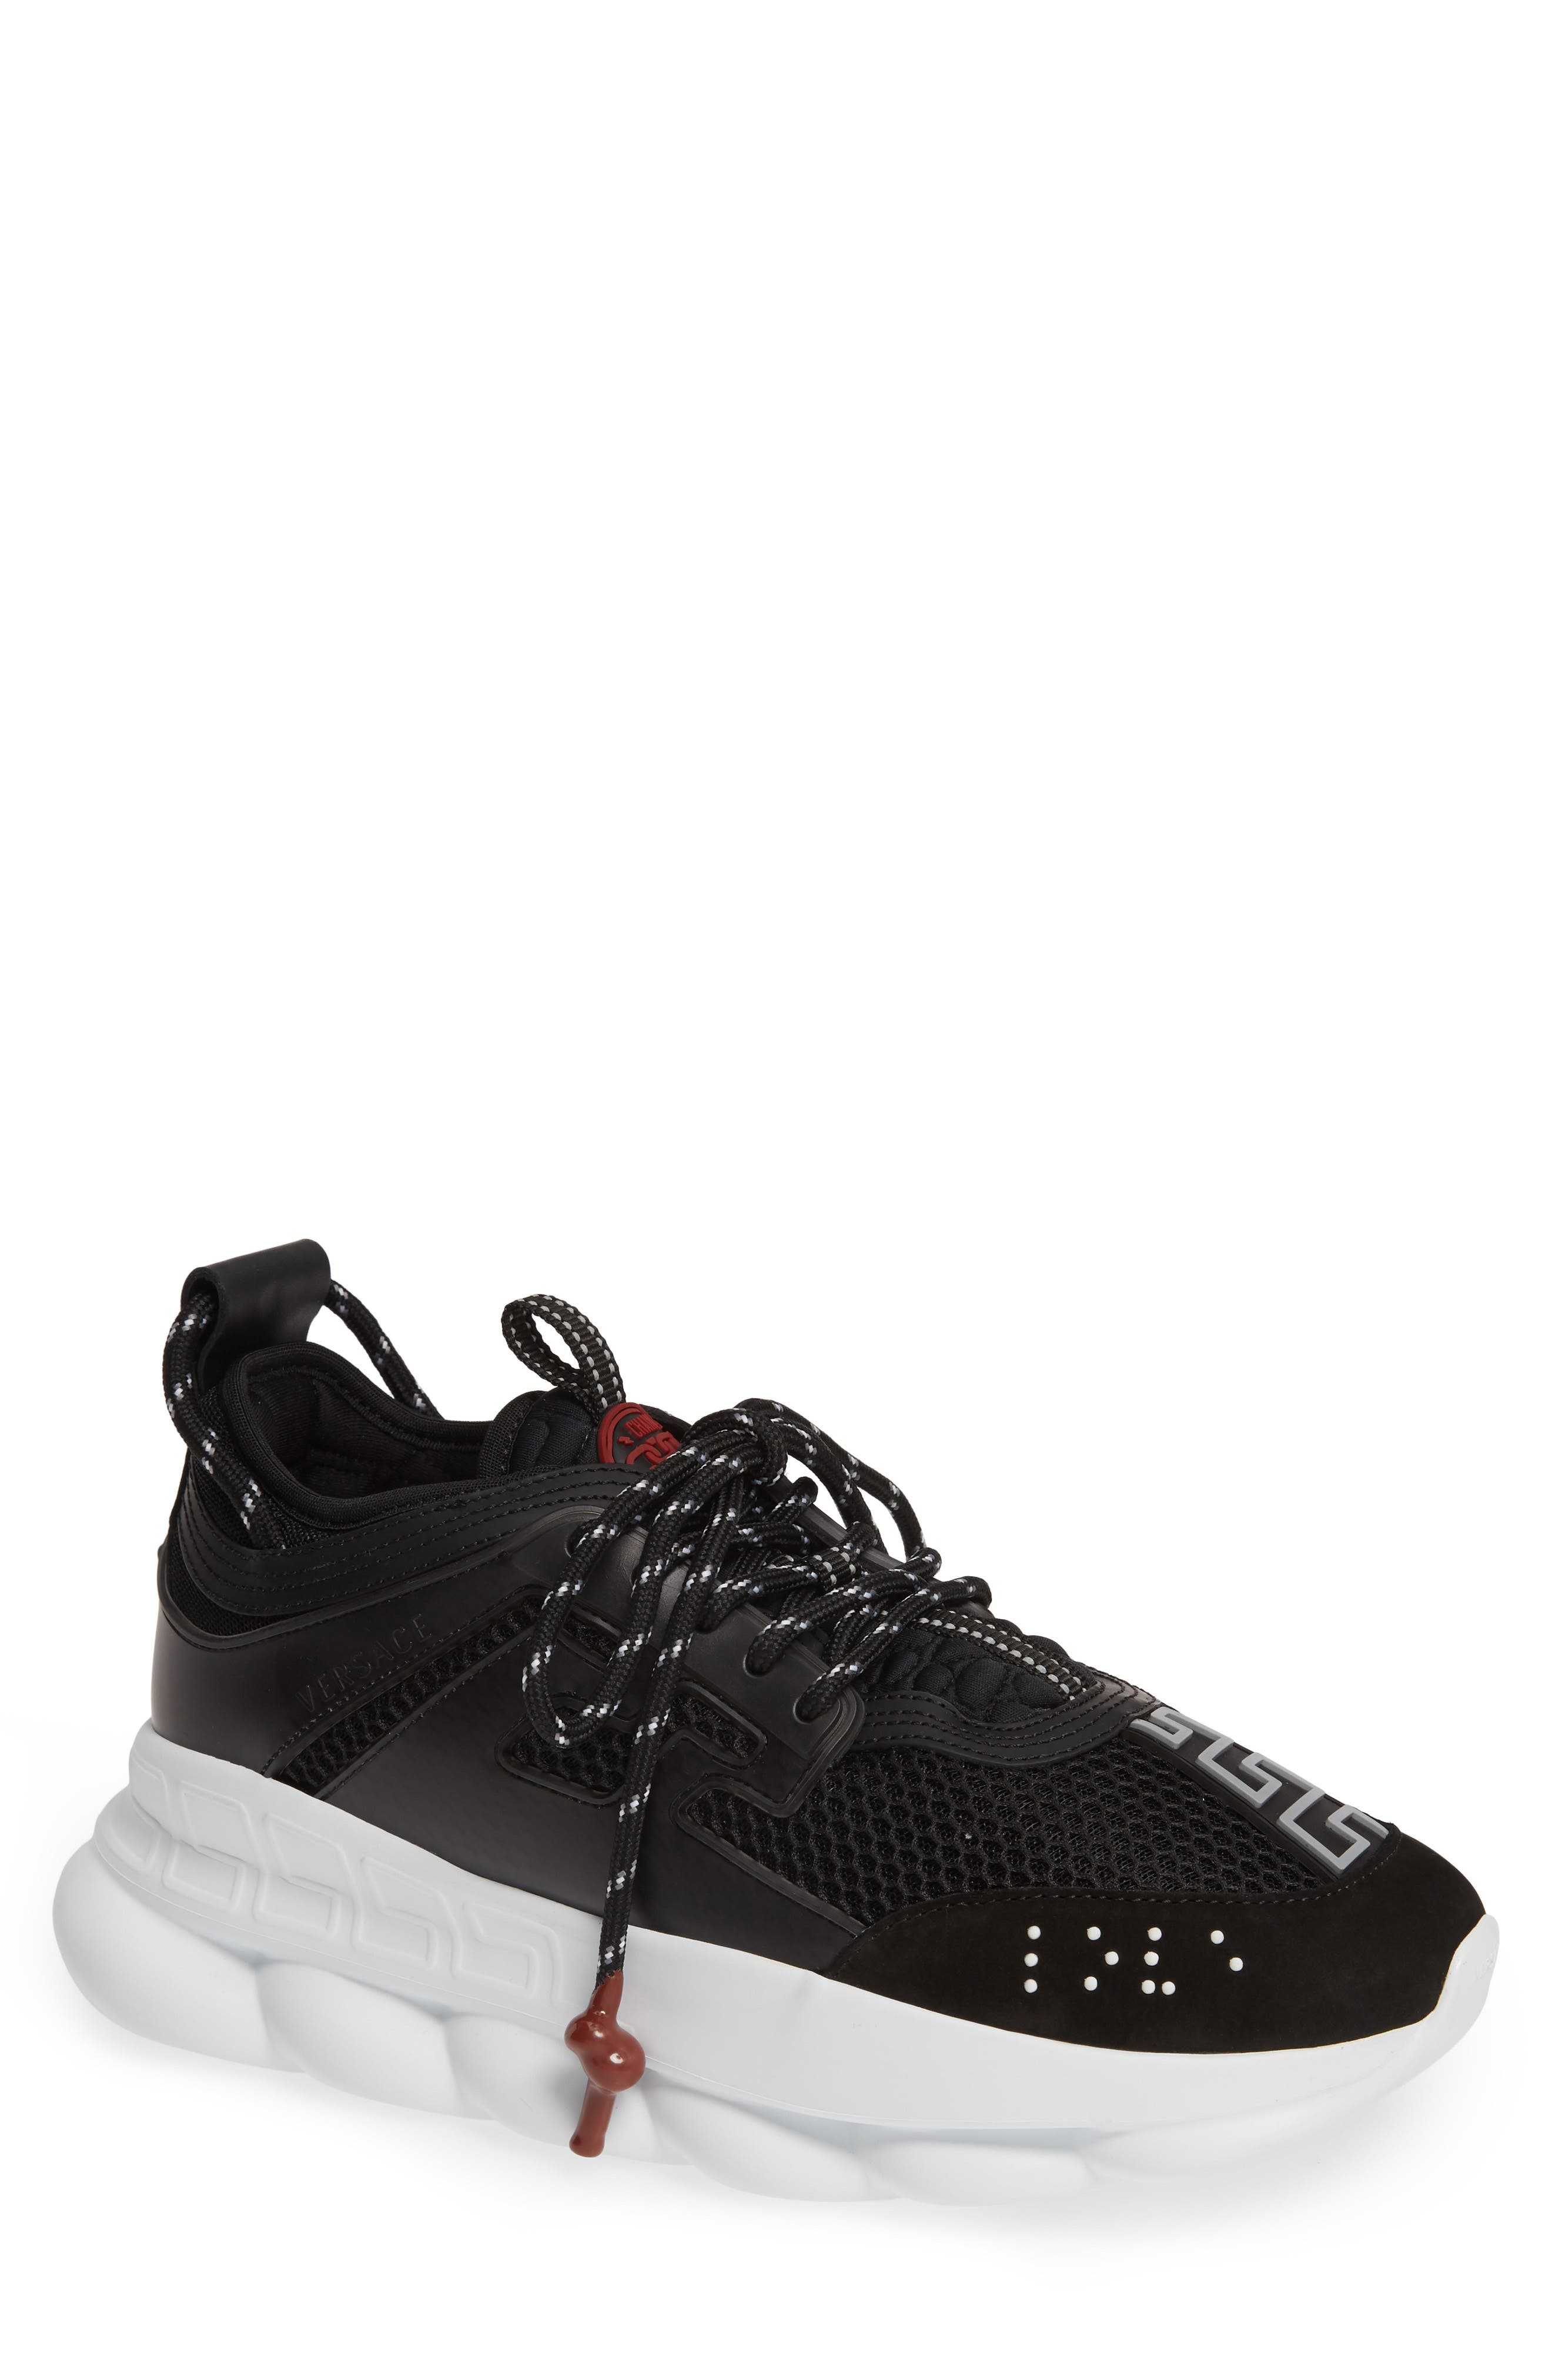 VERSACE FIRST LINE Versace Chain Reaction Sneaker, Main, color, BLACK/ GREY